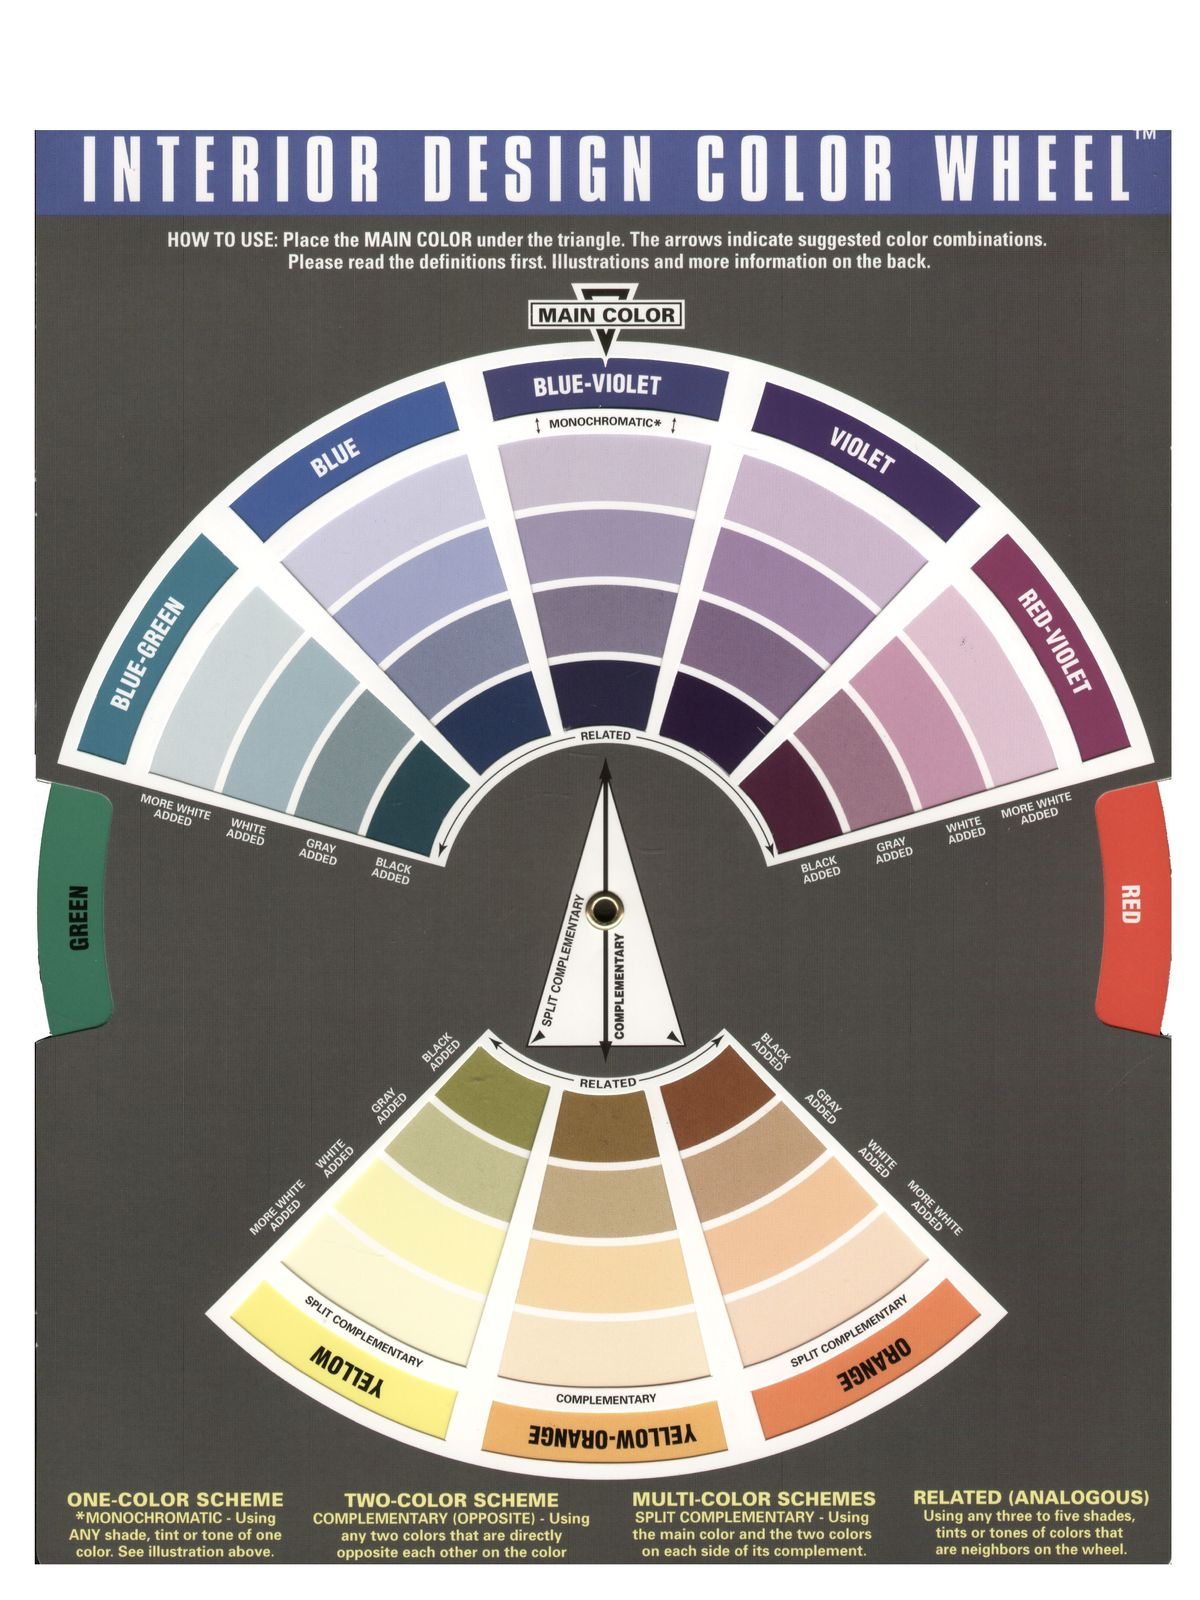 The color wheel company interior design wheel - Color wheel interior design ...